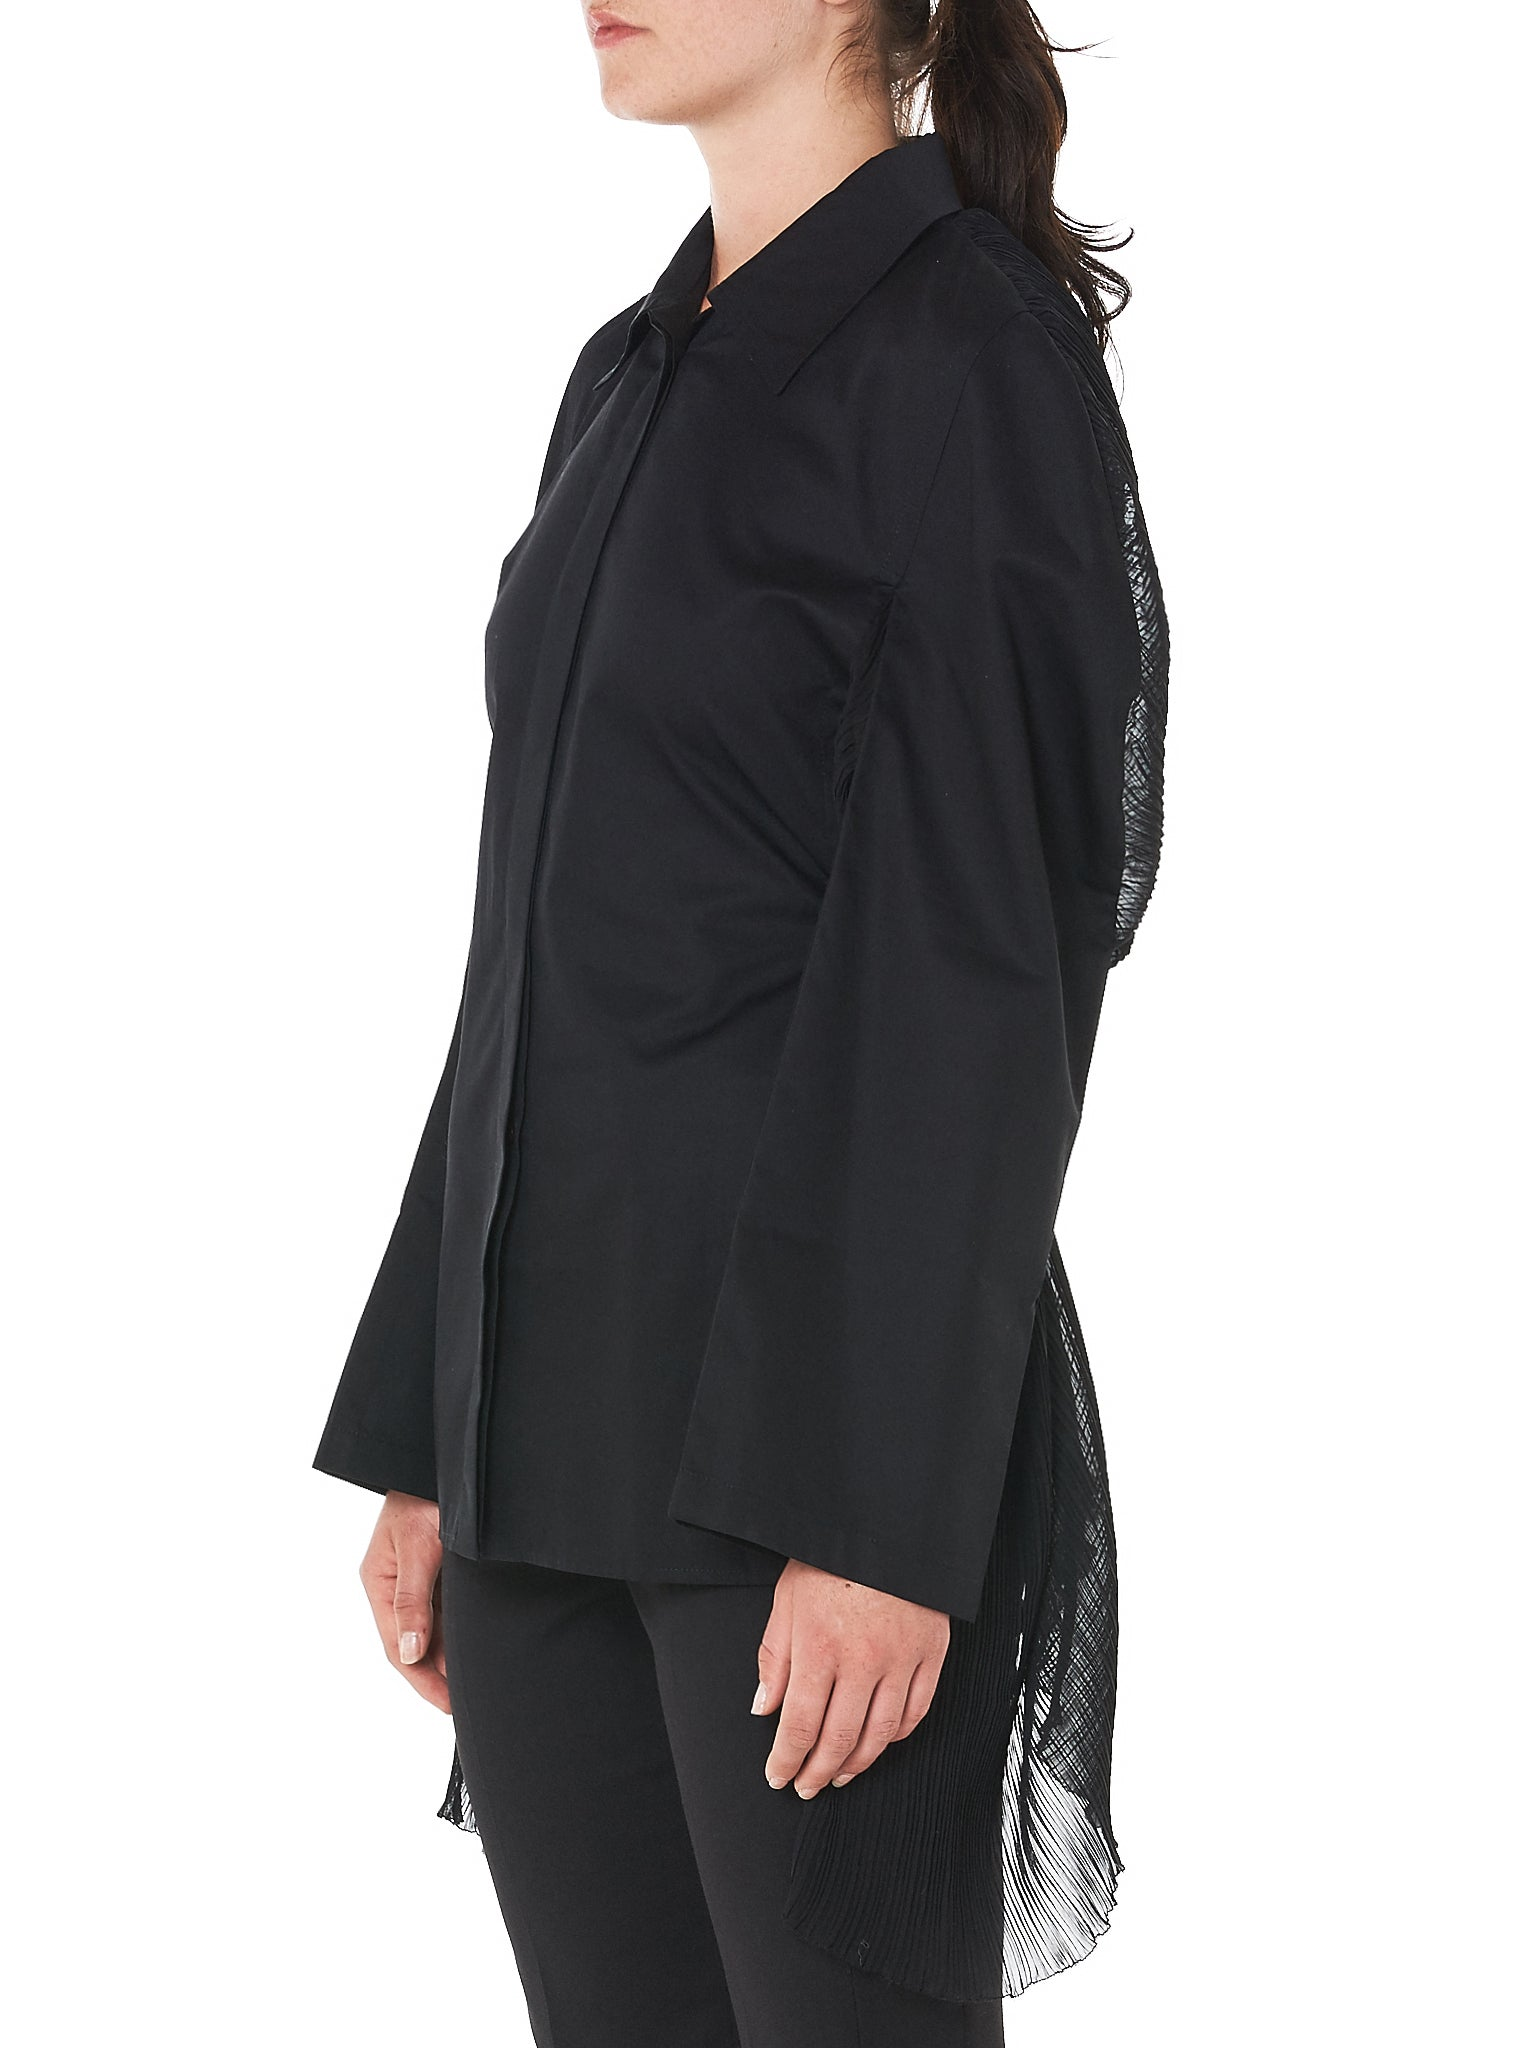 Paneled Shirt (B02F18C-BLACK)